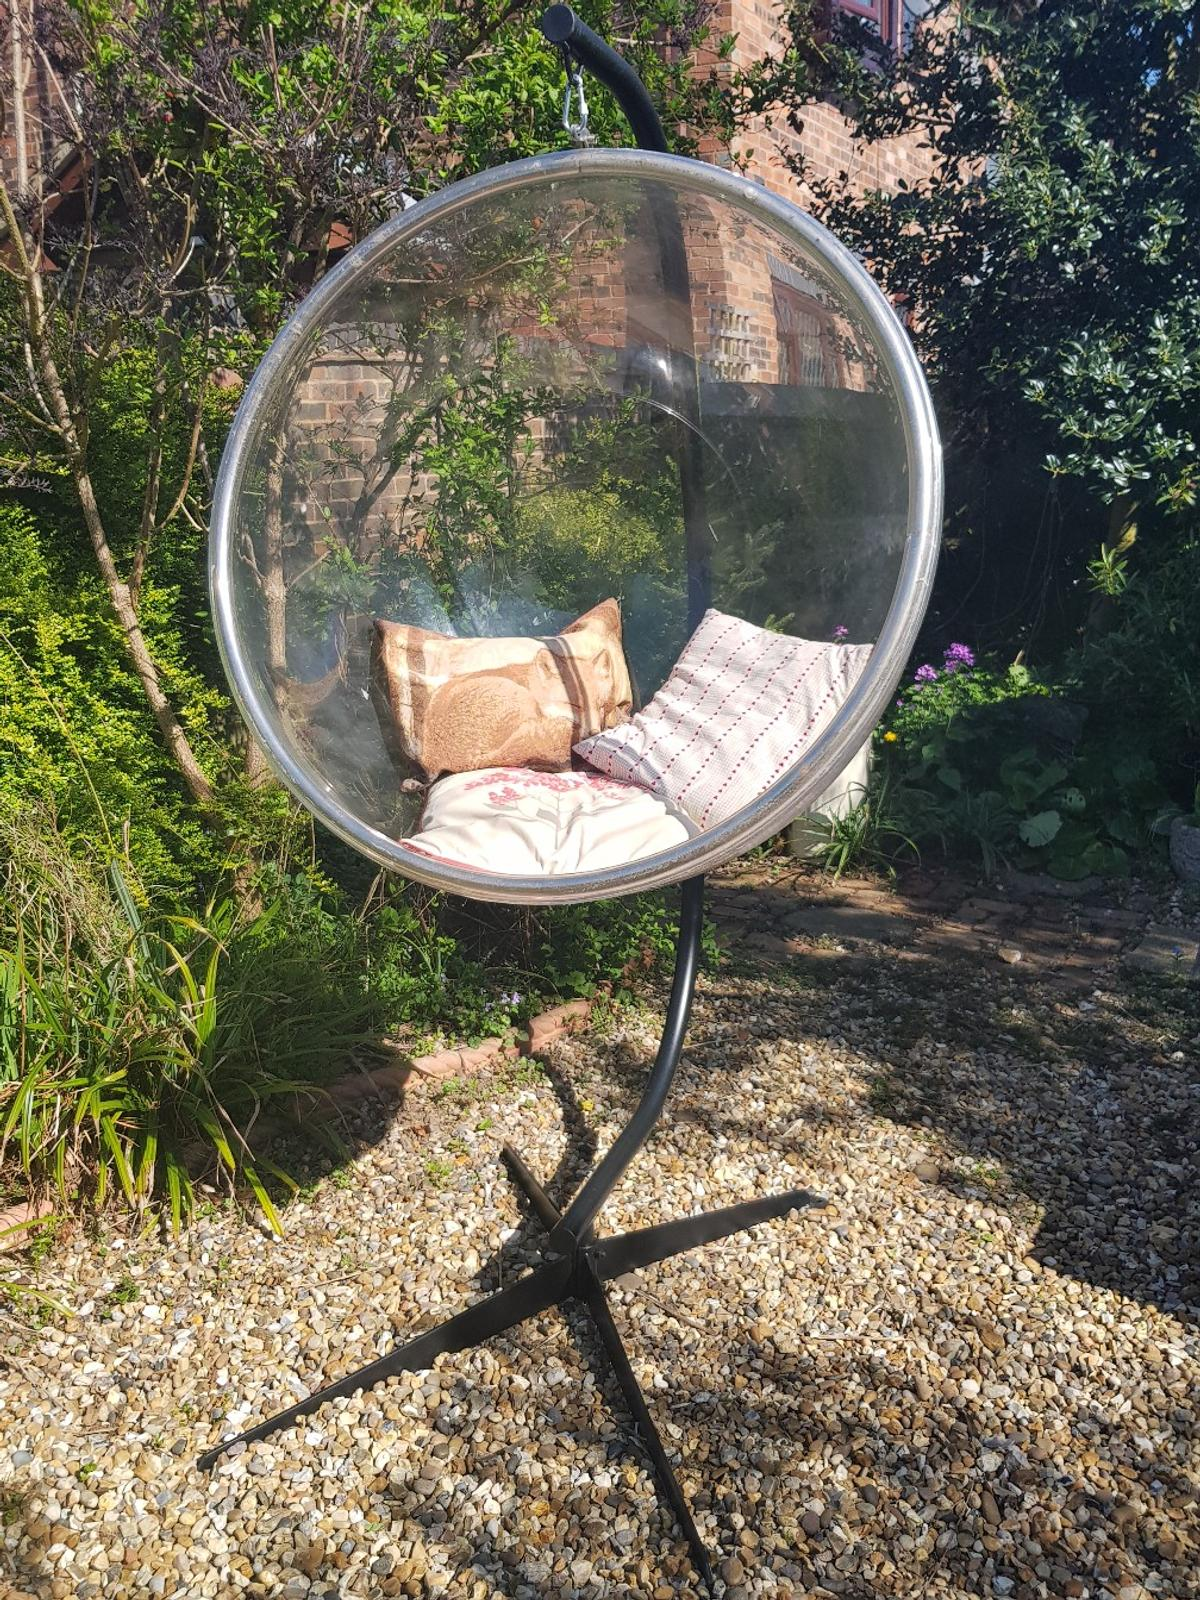 Picture of: Outdoor Modern Feature Hanging Bubble Chair In Wd25 Watford For 200 00 For Sale Shpock